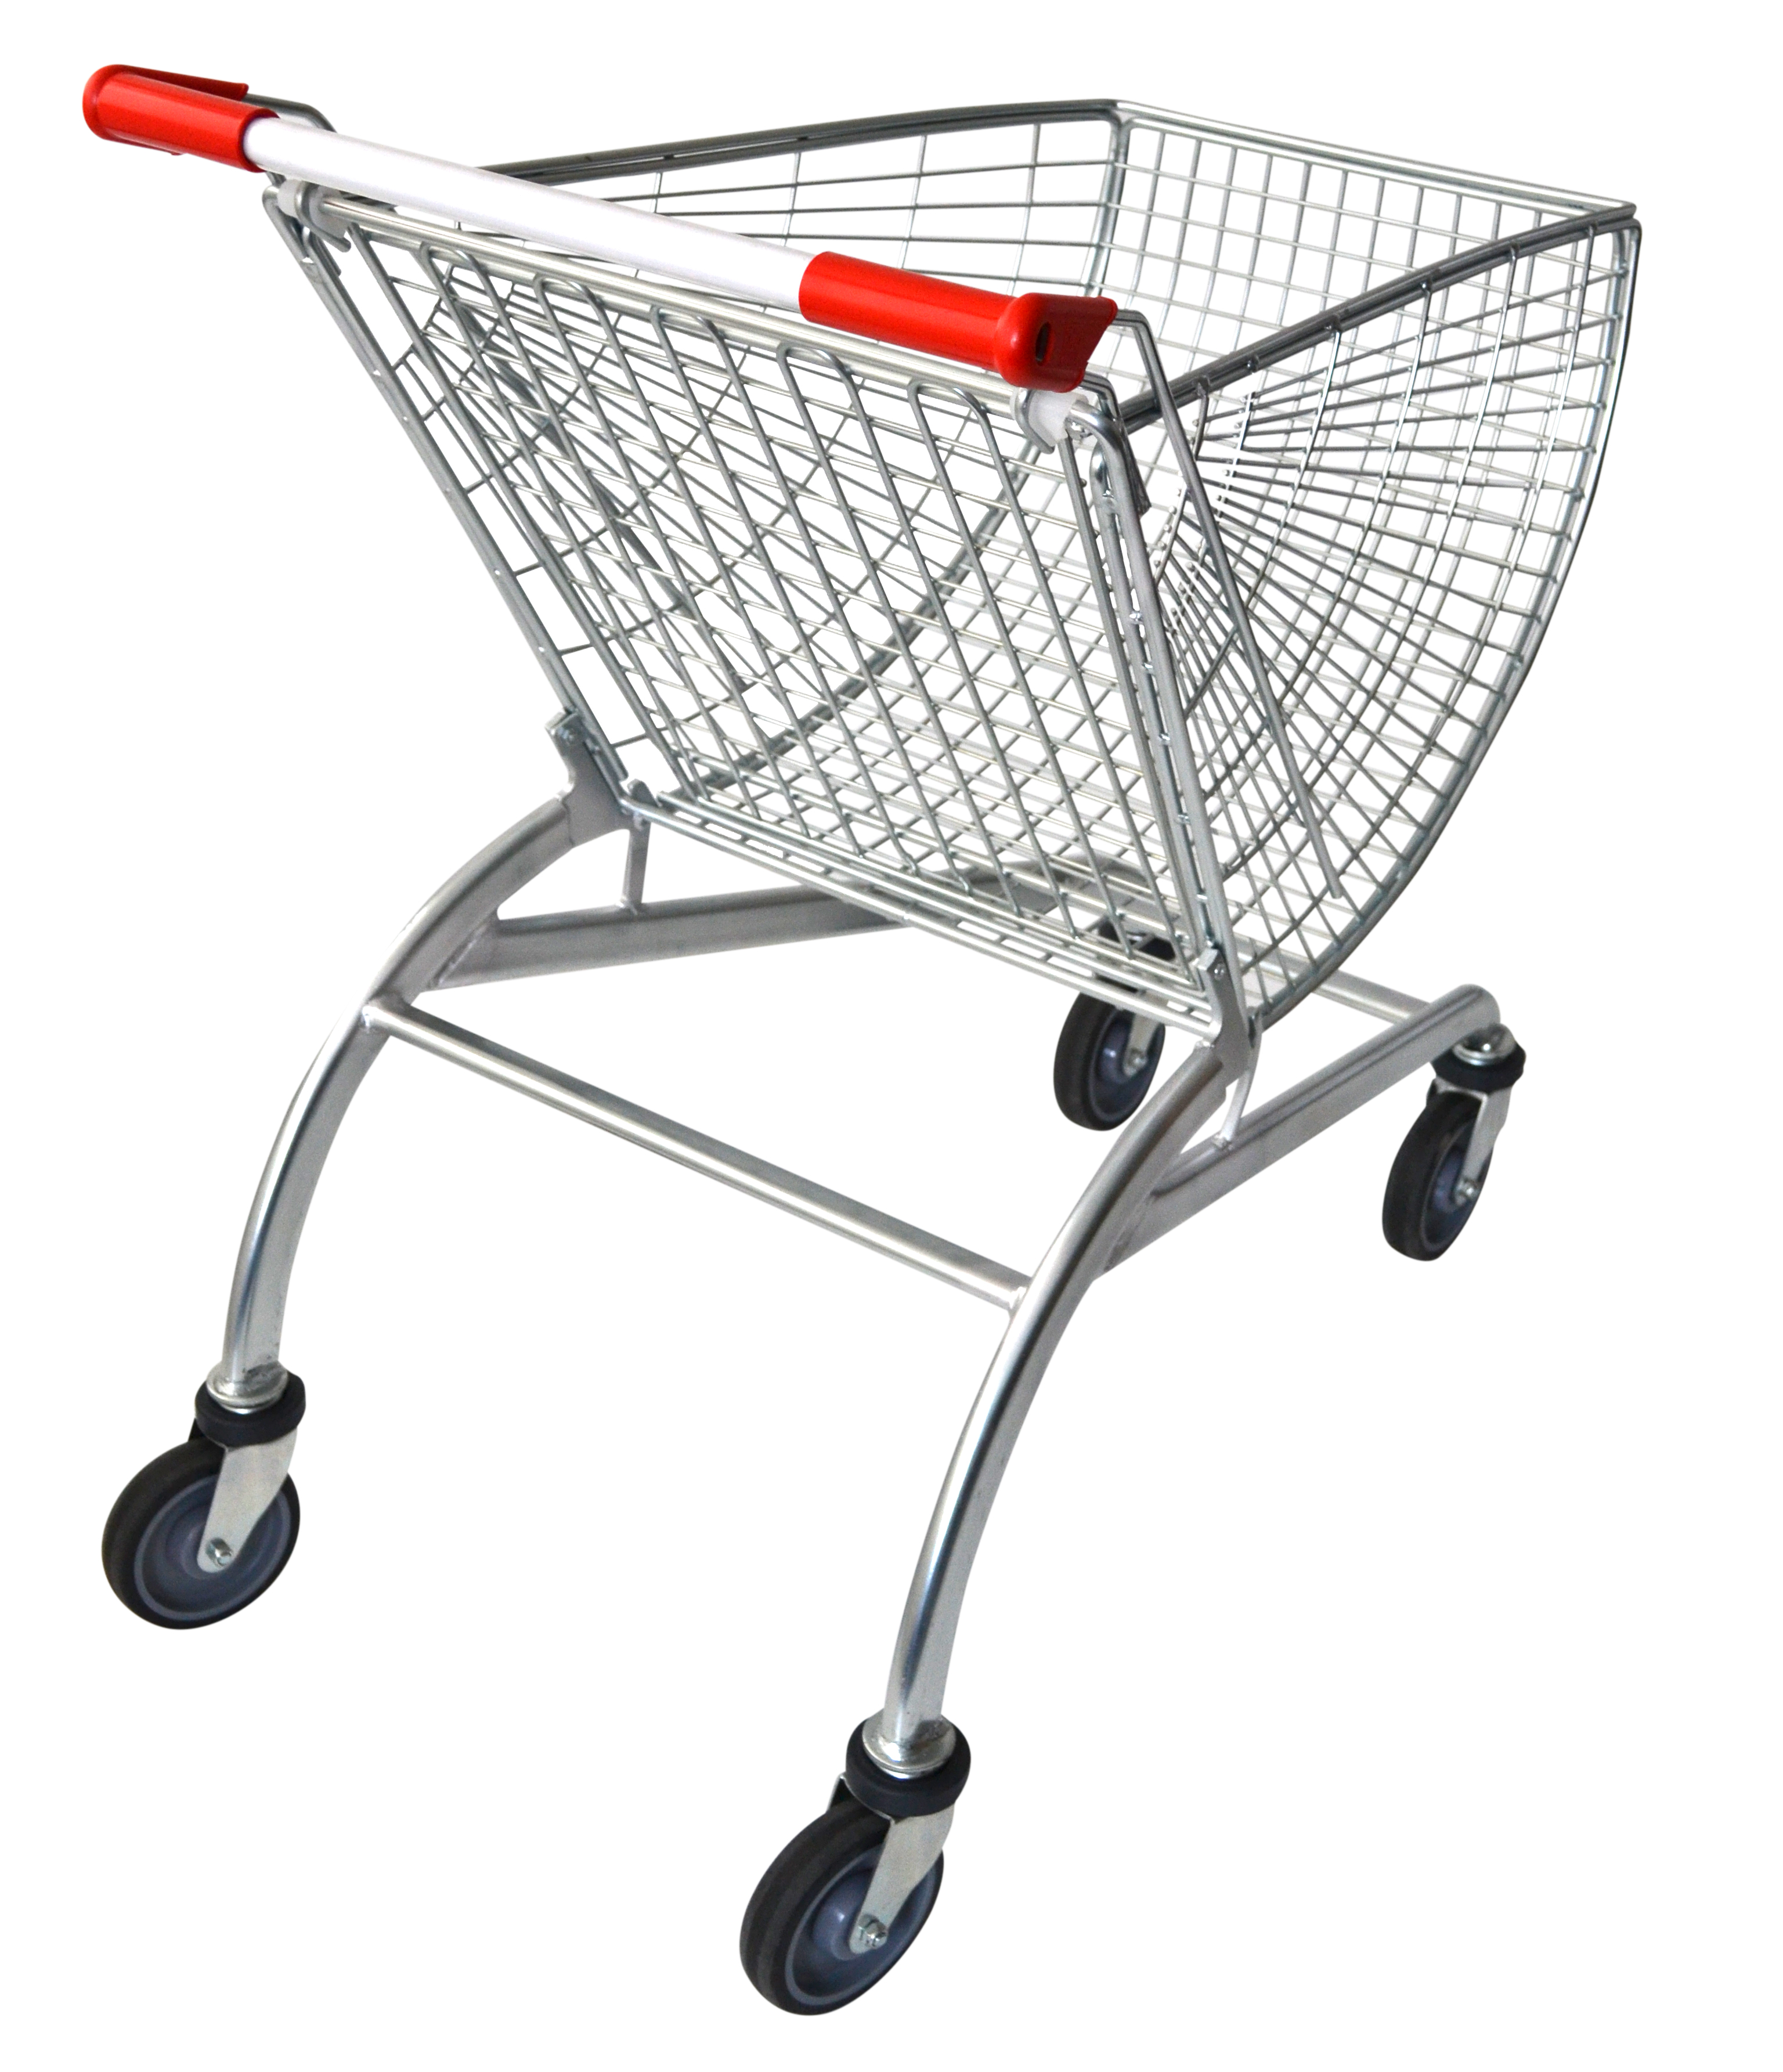 50 litre shopping trolley is made to suit supermarkets, fruit shops & small sized retail stores. It's zinc plated & clear laquered with option to customize the trolley handle with your company logo. Available now & ships Australia wide.